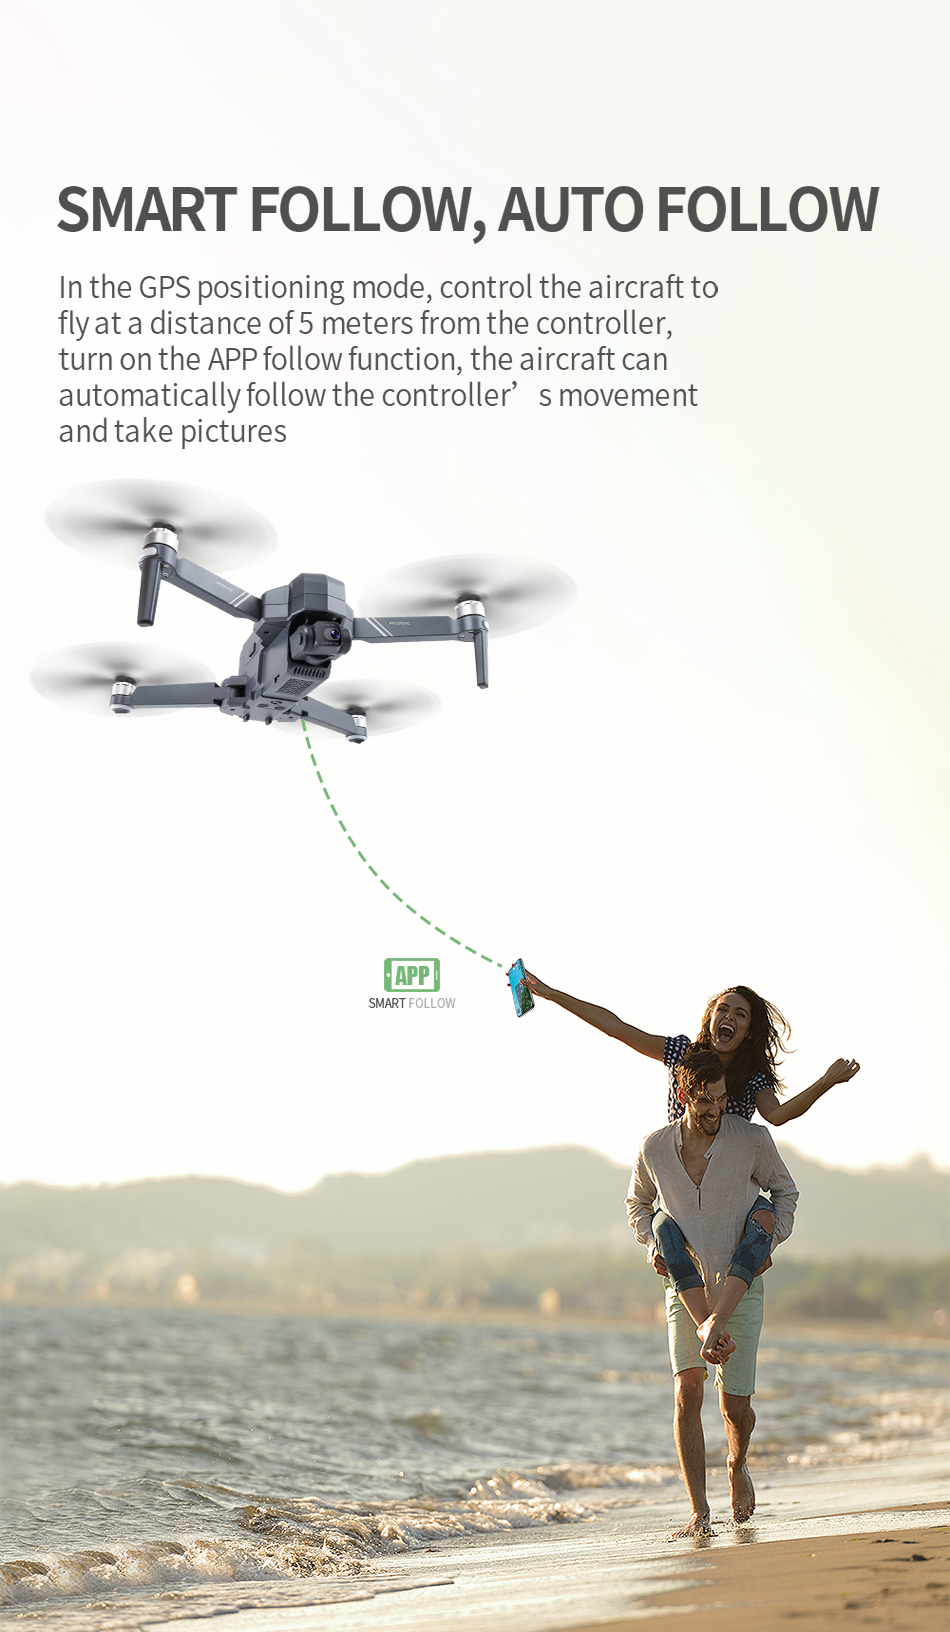 H1ada28fa2e7b4c2296f7499547faf06ee - SJRC F11 Pro 4K F11s Pro 2.5K Camera Drone GPS 5G FPV HD 2 Axis Stabilized Gimbal EIS Professional Brushless Quadcopter RC Dron